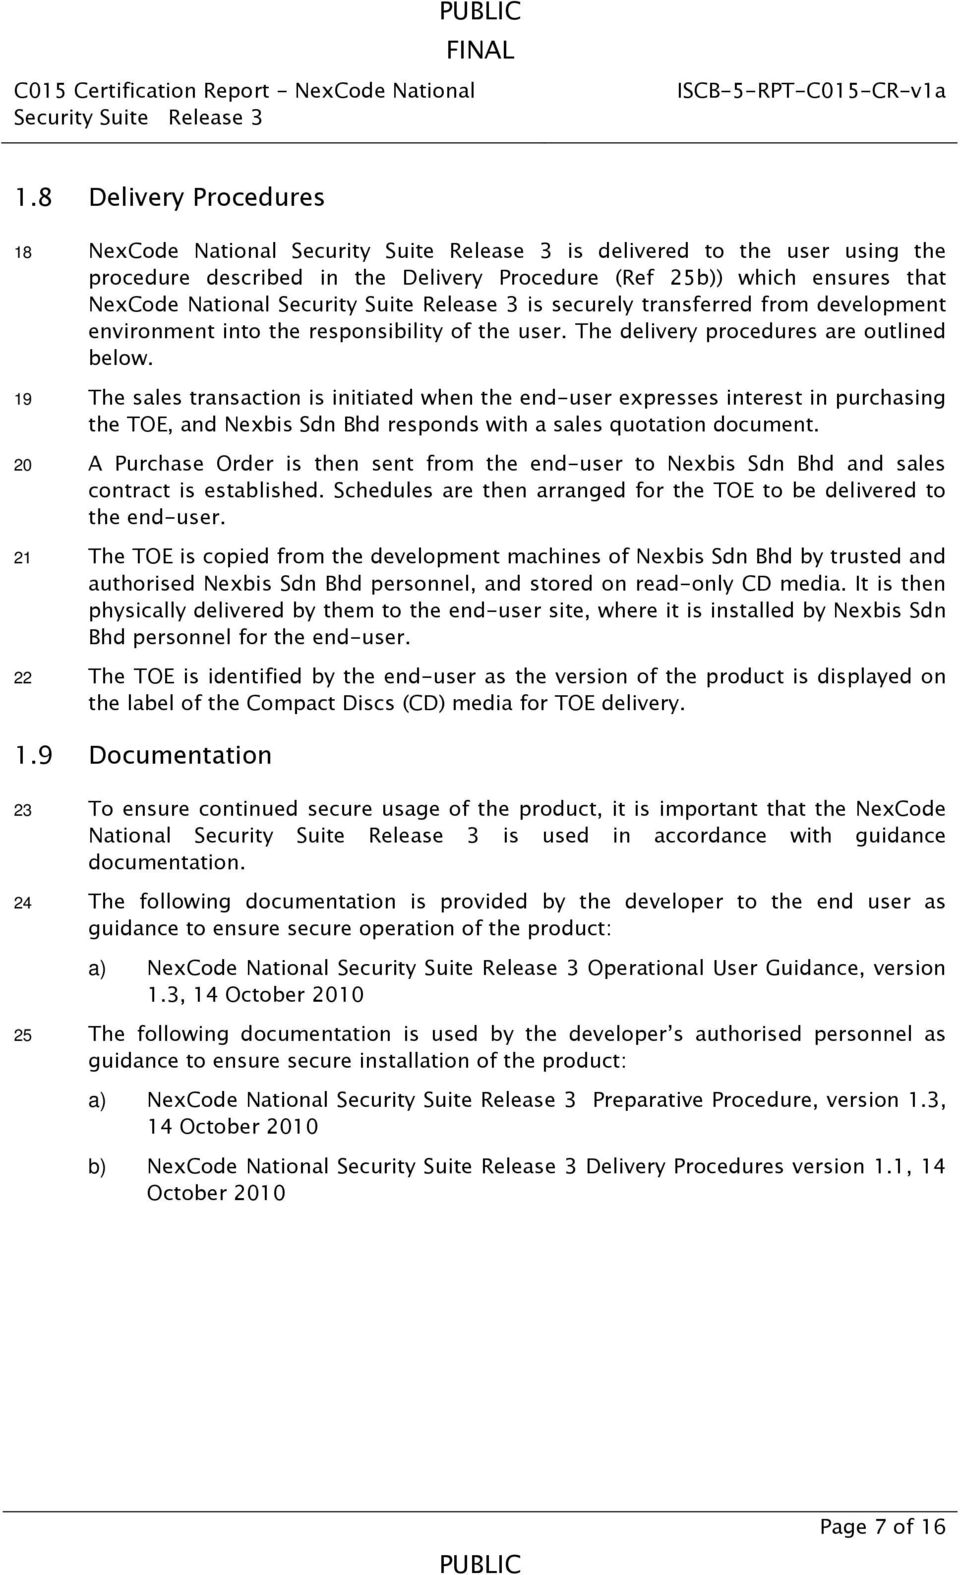 19 The sales transaction is initiated when the end-user expresses interest in purchasing the TOE, and Nexbis Sdn Bhd responds with a sales quotation document.